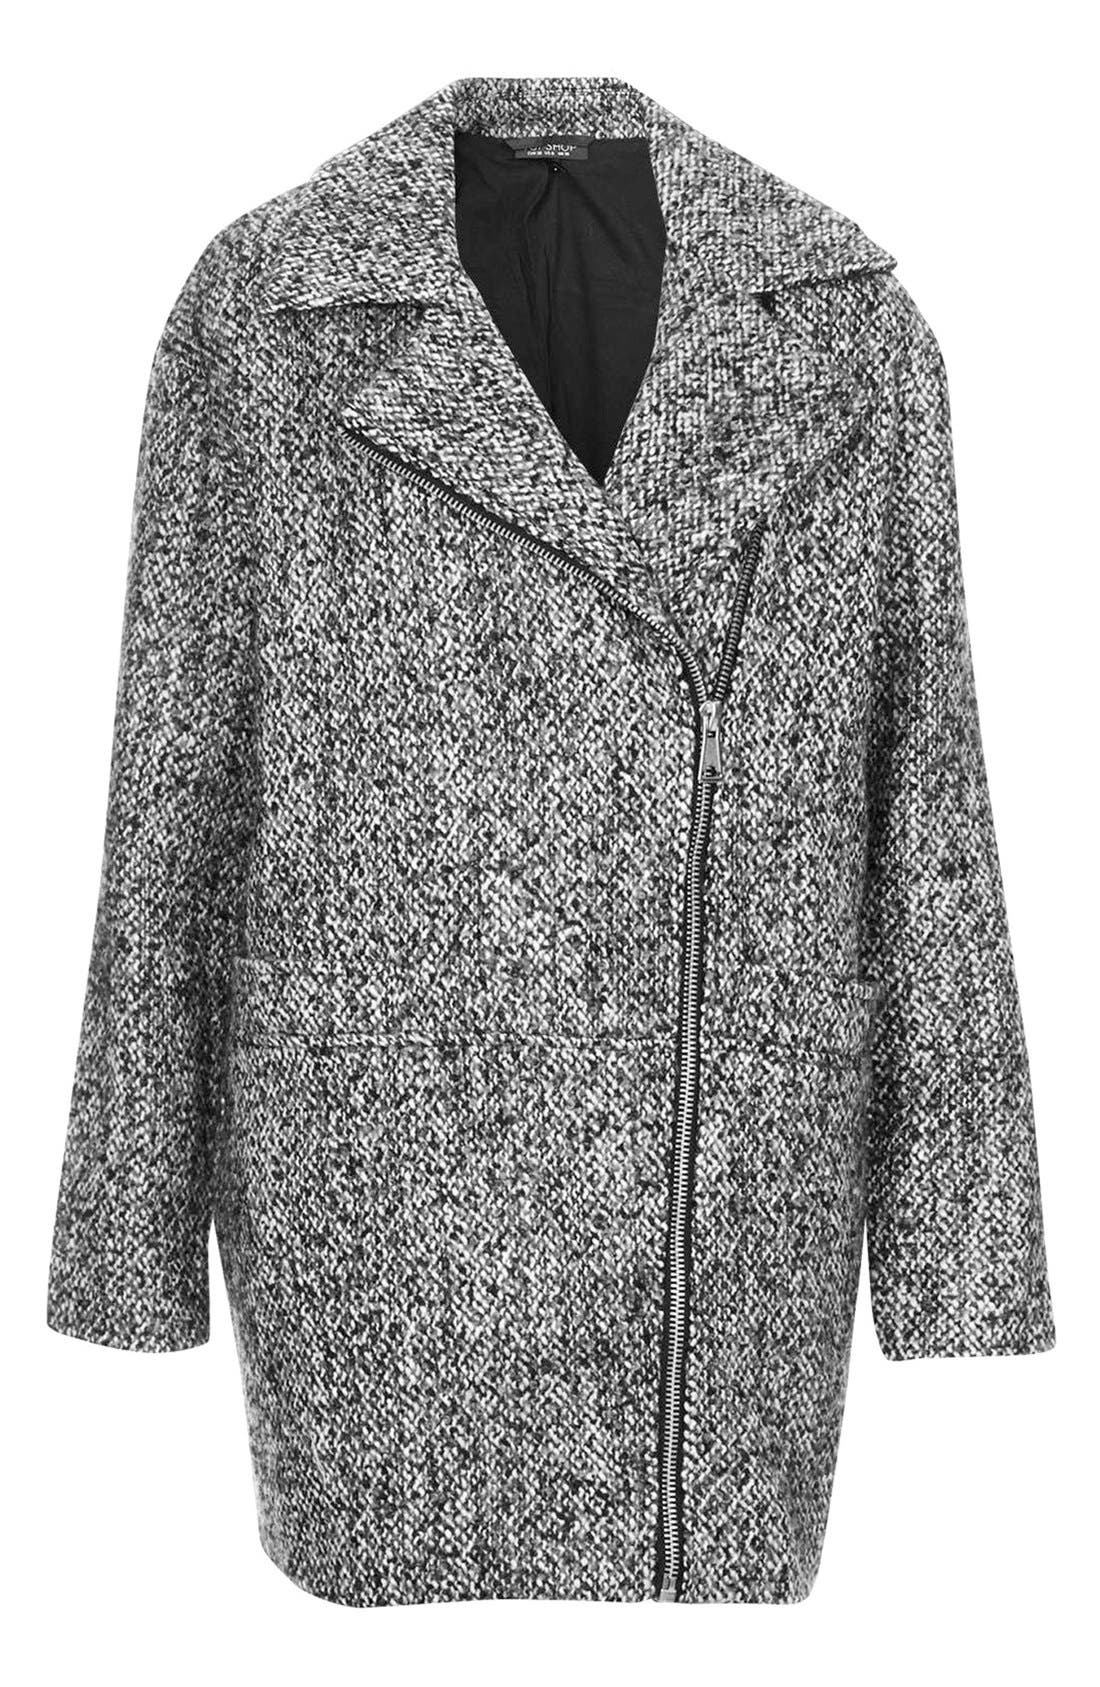 Alternate Image 3  - Topshop Textured Wool Jacket